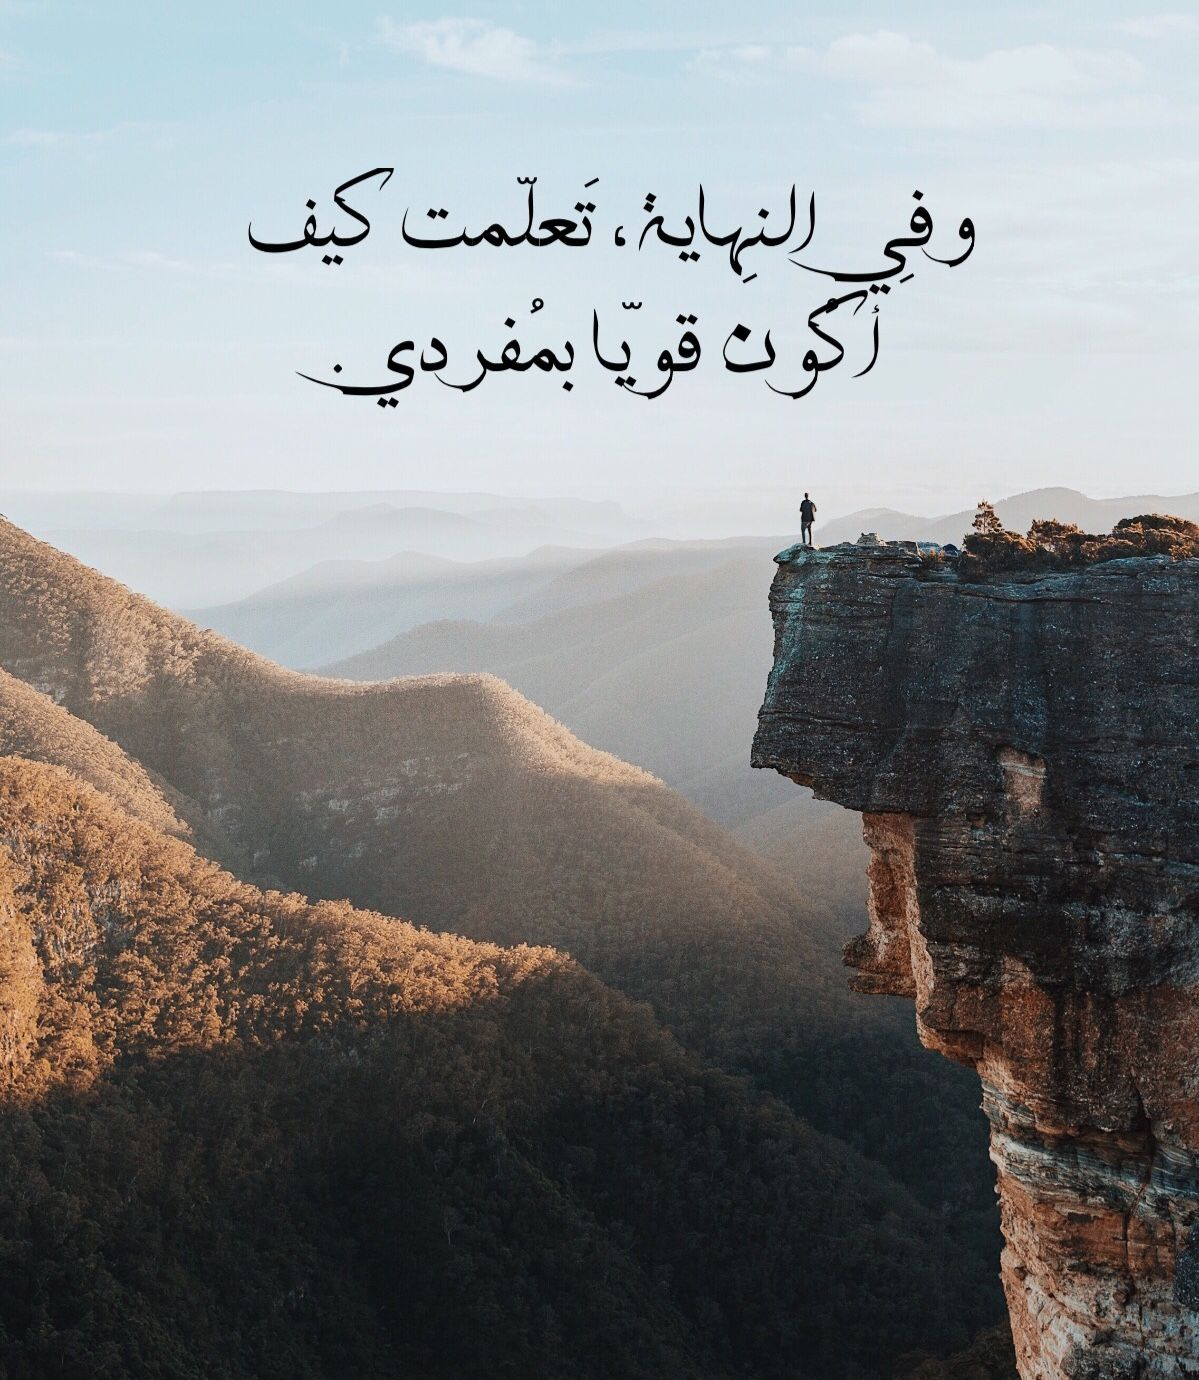 Pin By Fahad Baloch On Arabic Quotes Arabic Quotes Love Words Motivational Phrases